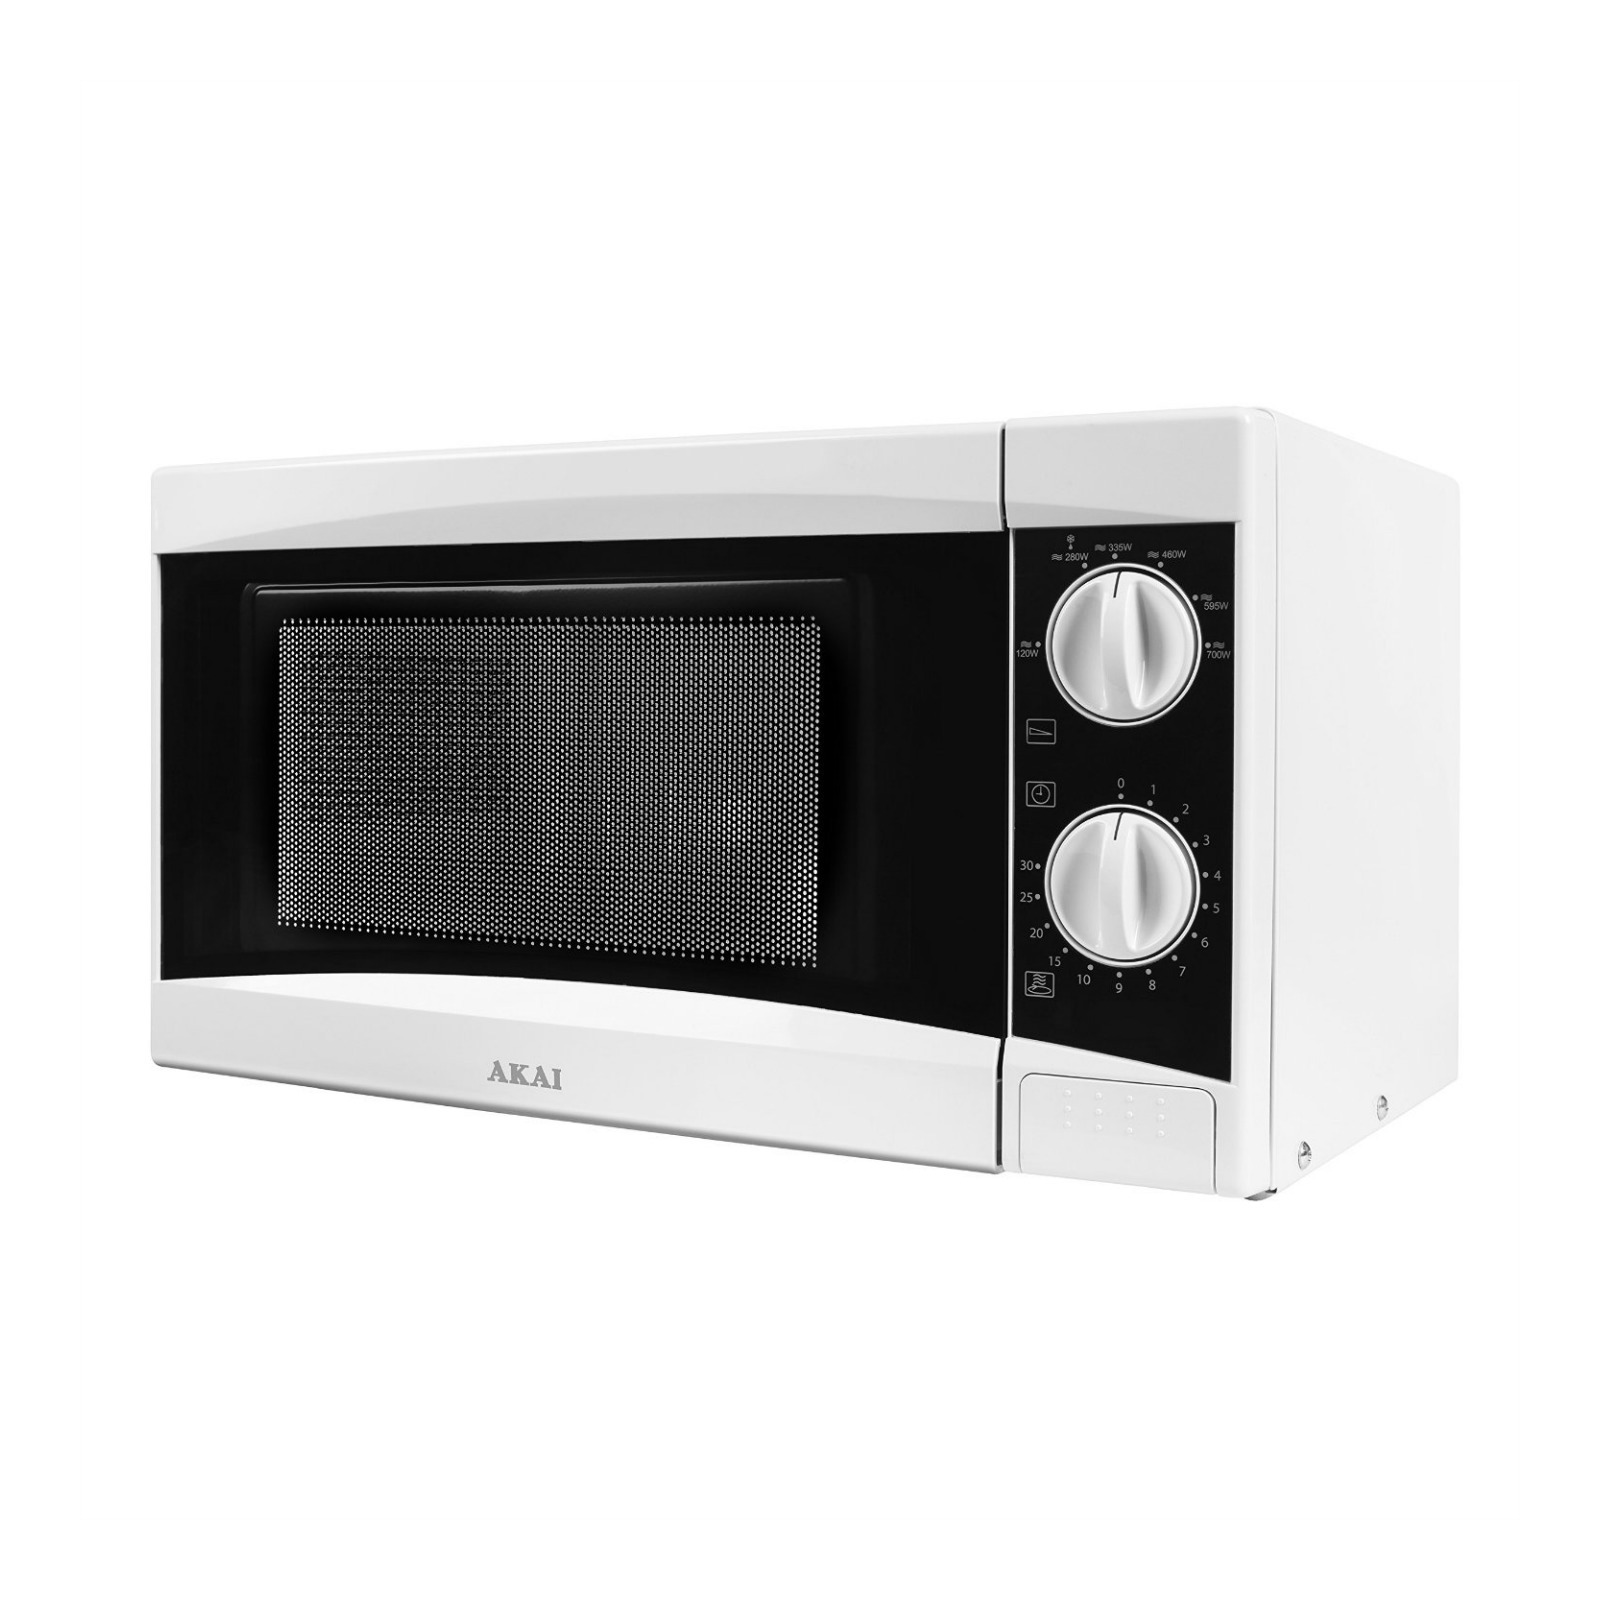 Countertop Microwave Uk : ... about Akai A24001 Manual Countertop Microwave 800 Watt 20 Litre White